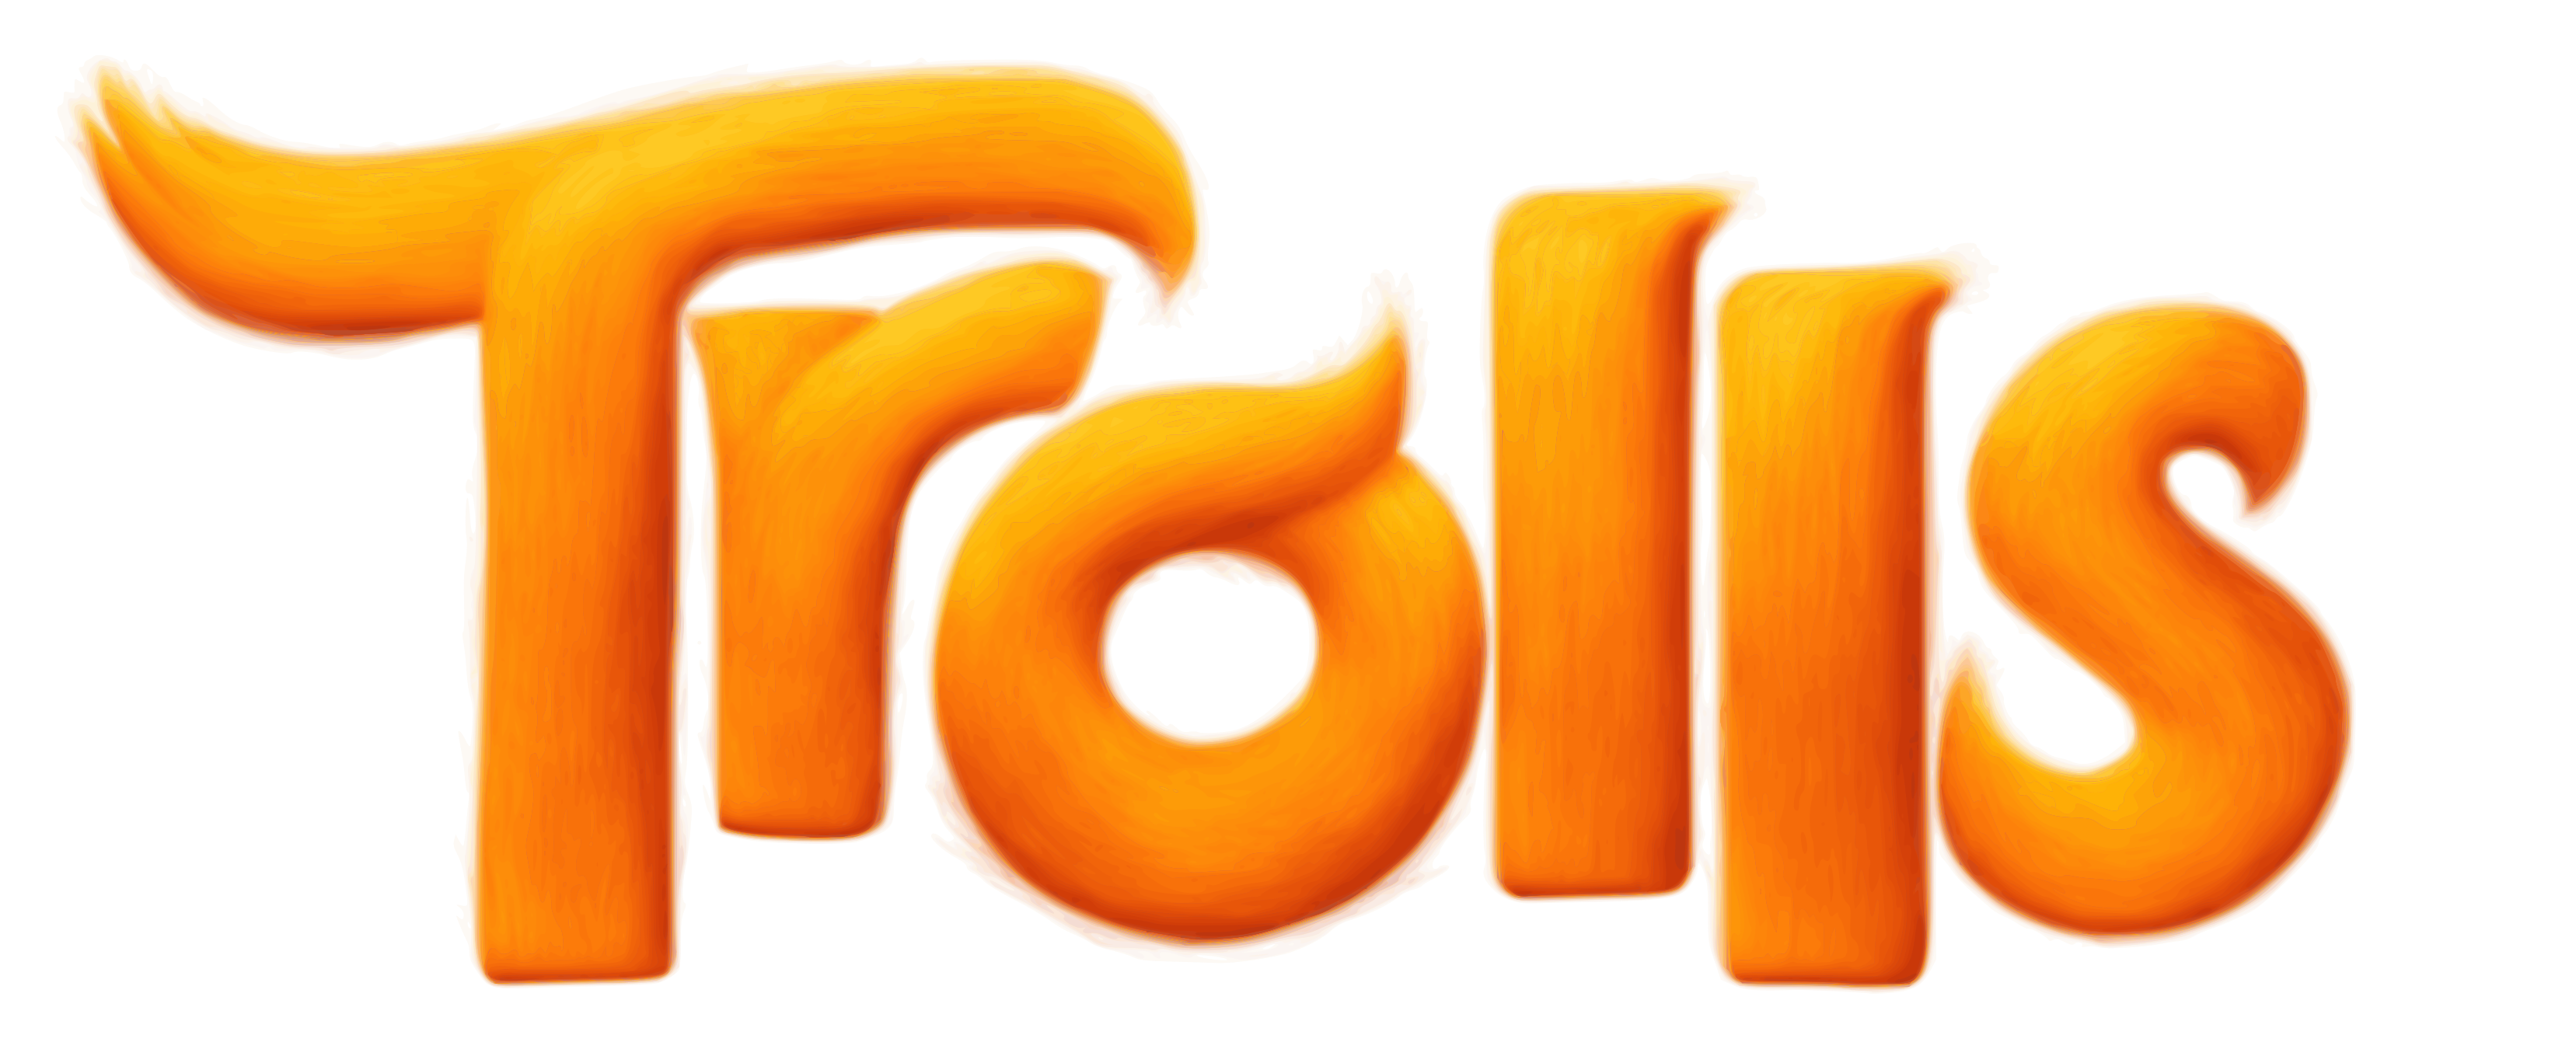 Trolls movie logo png. File alternative svg wikimedia